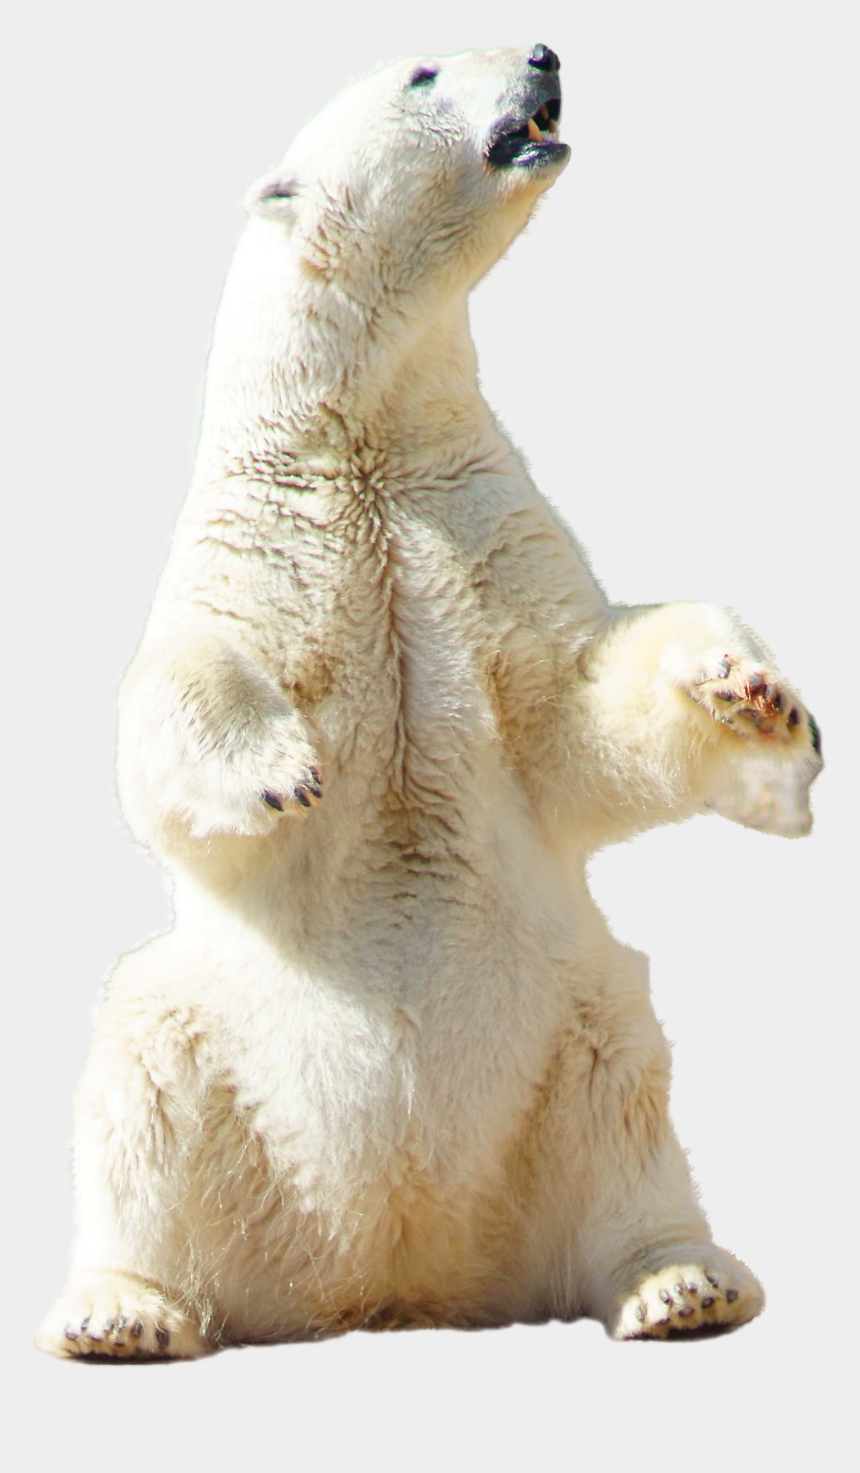 polar bear on ice clipart, Cartoons - Polar Bear Sitting - Transparent Polar Bear Sitting